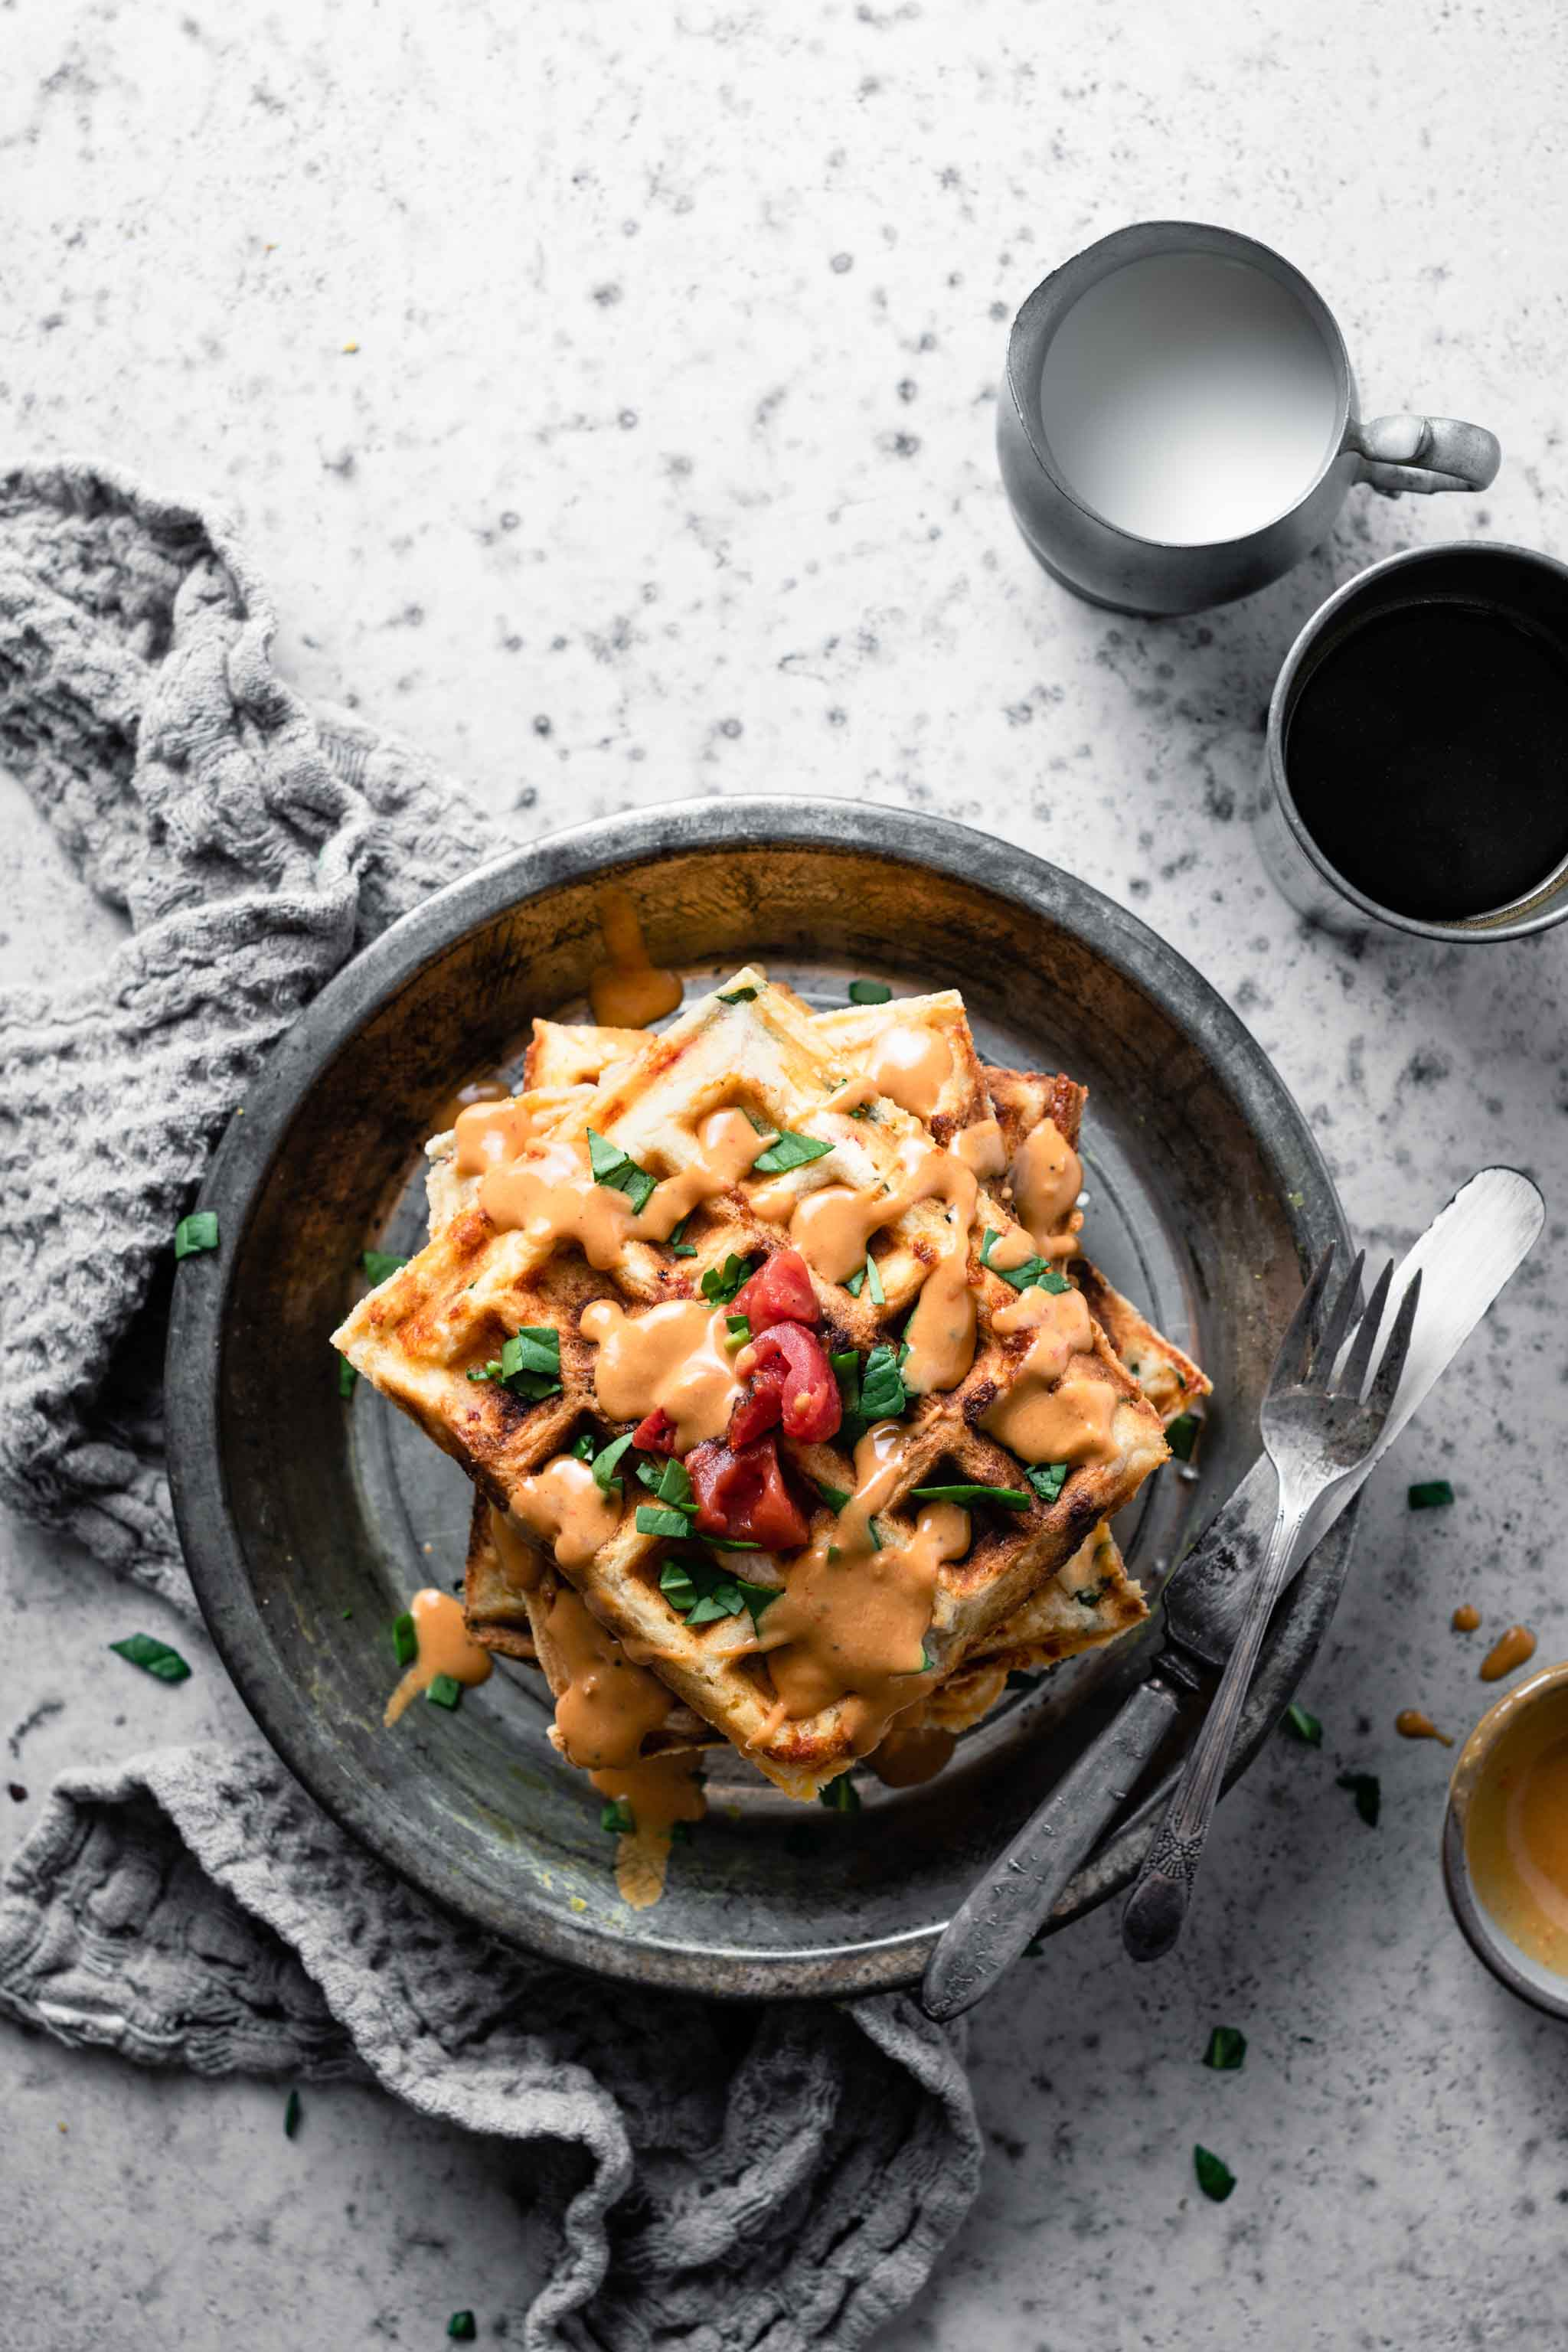 Savory Waffles with remoulade sauce.